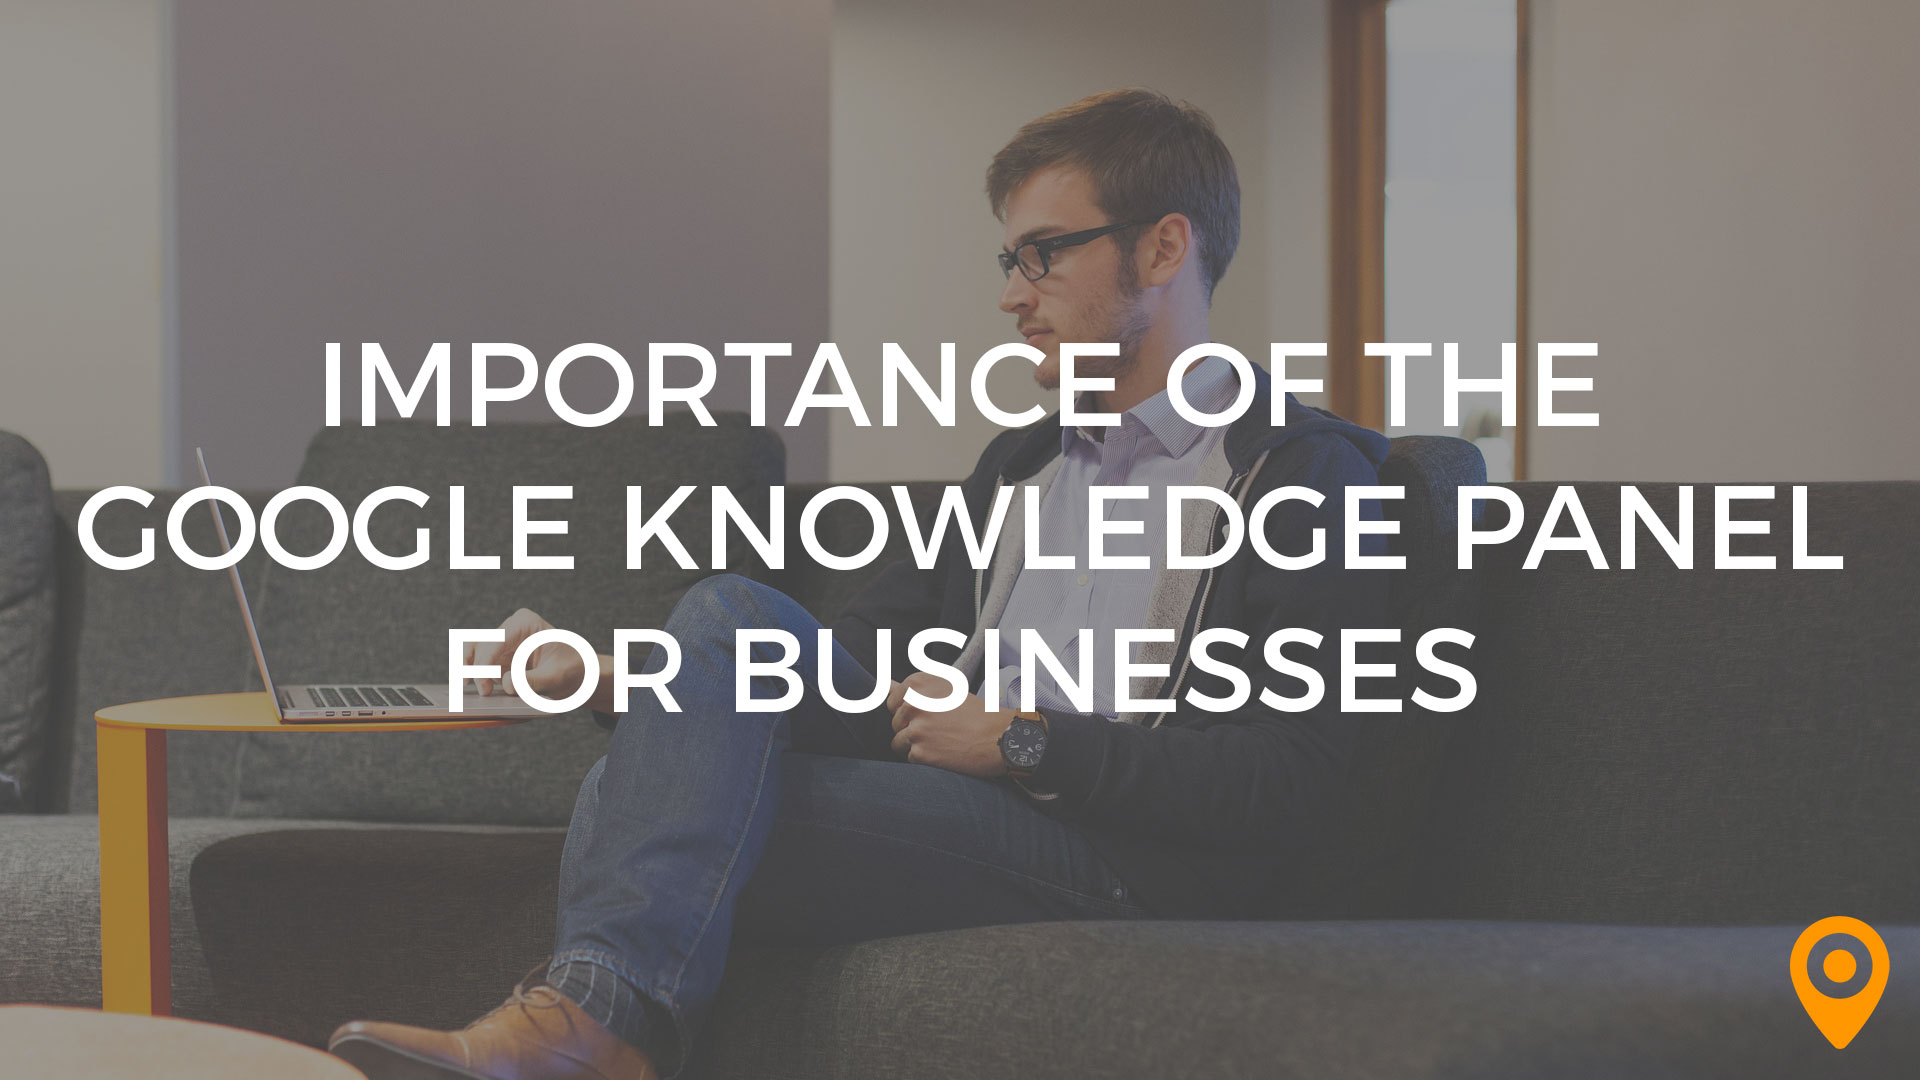 Importance of the Google Knowledge Panel for Businesses